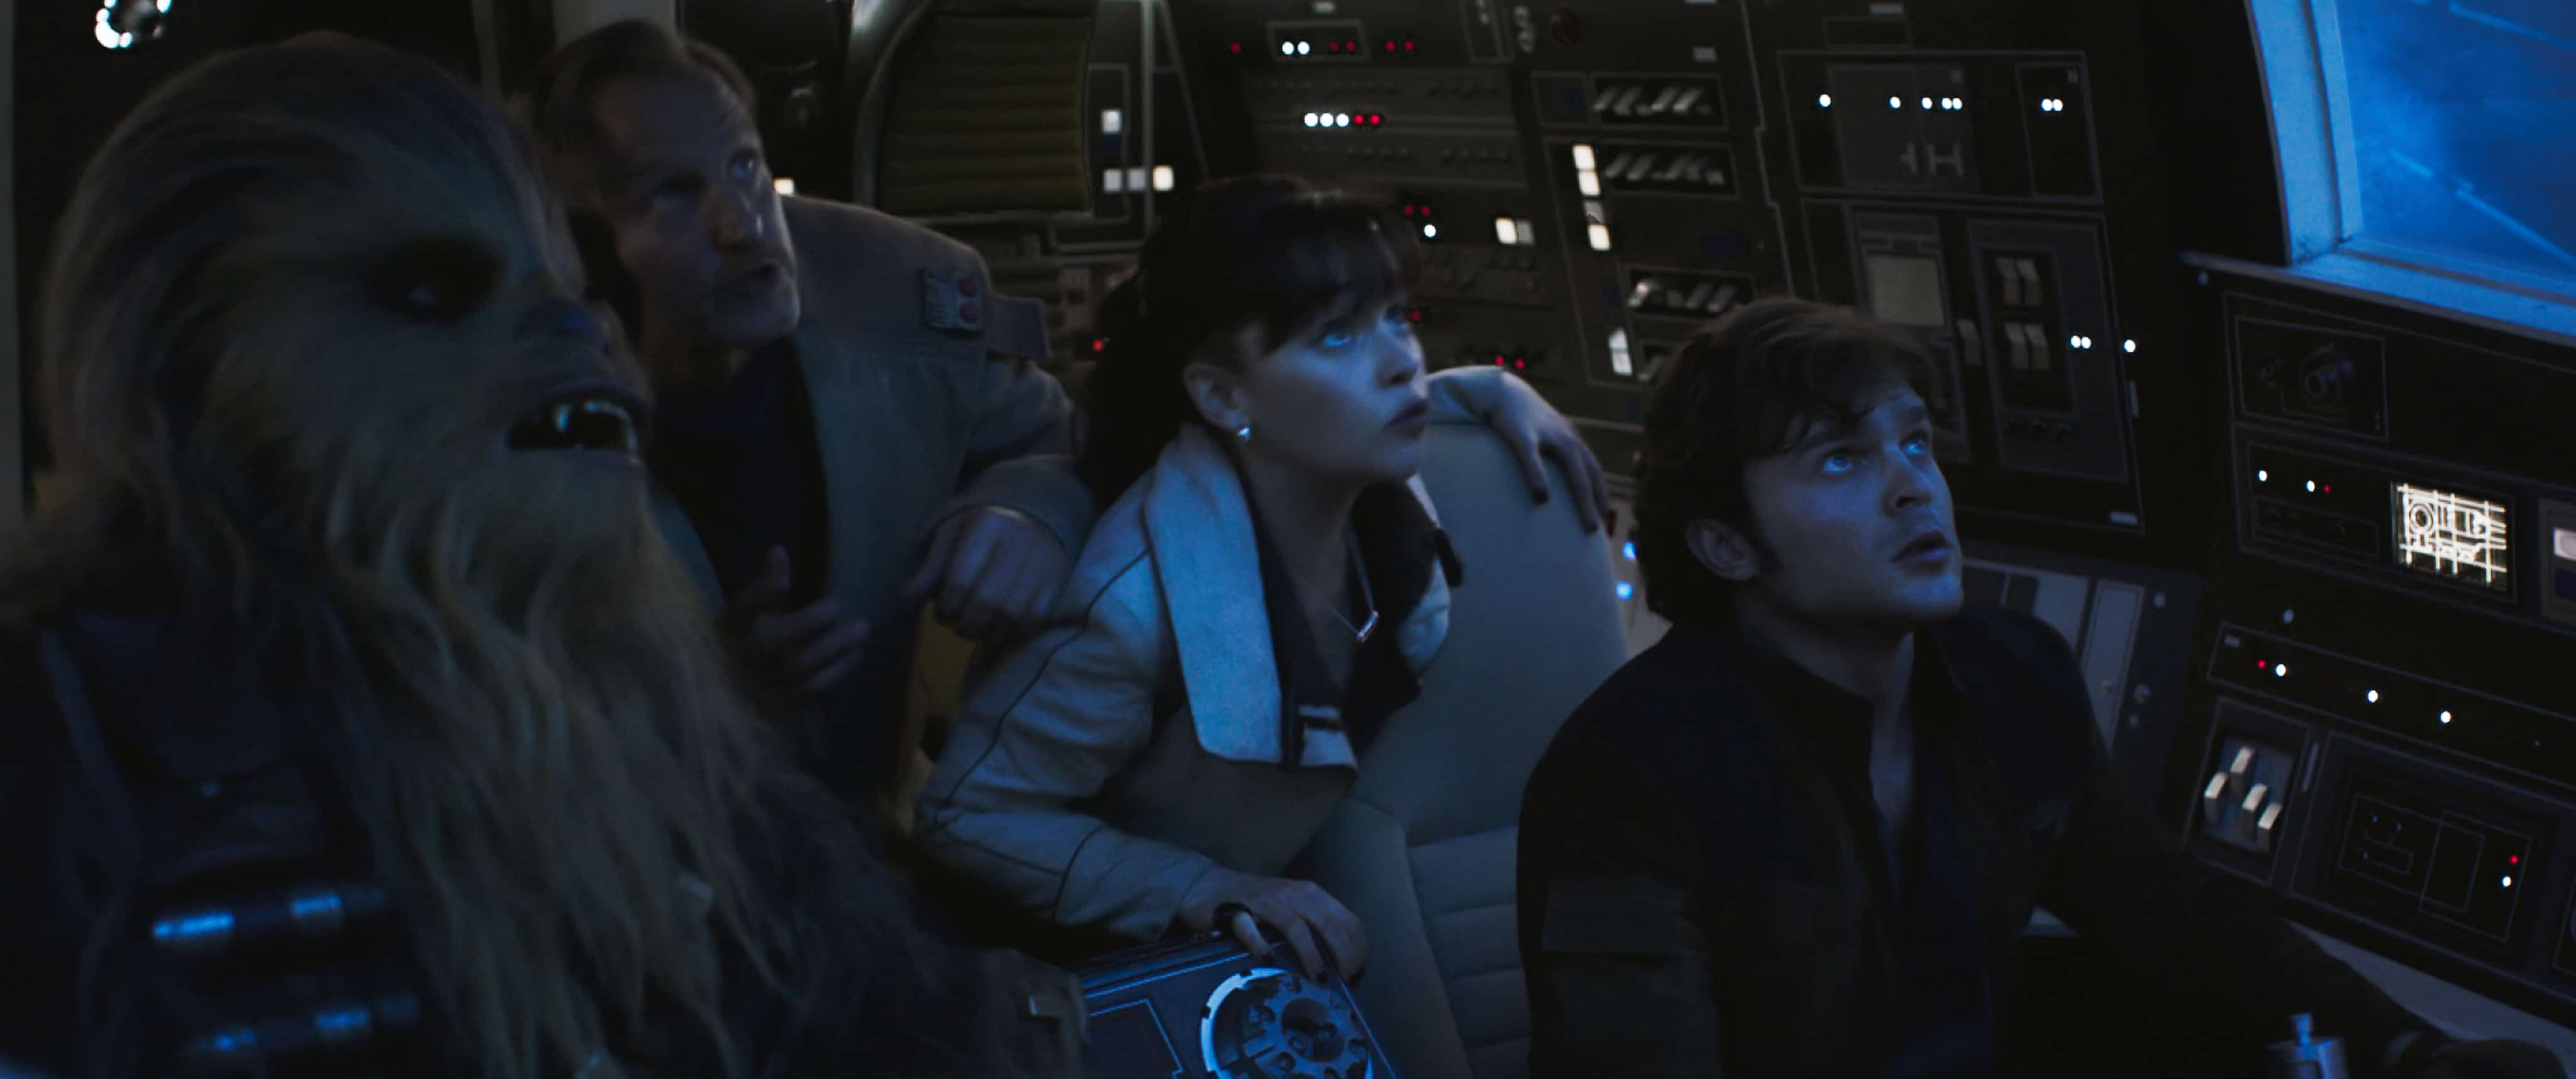 Spoiler Free SOLO: A STAR WARS STORY Movie Review! #HanSoloEvent #HanSolo